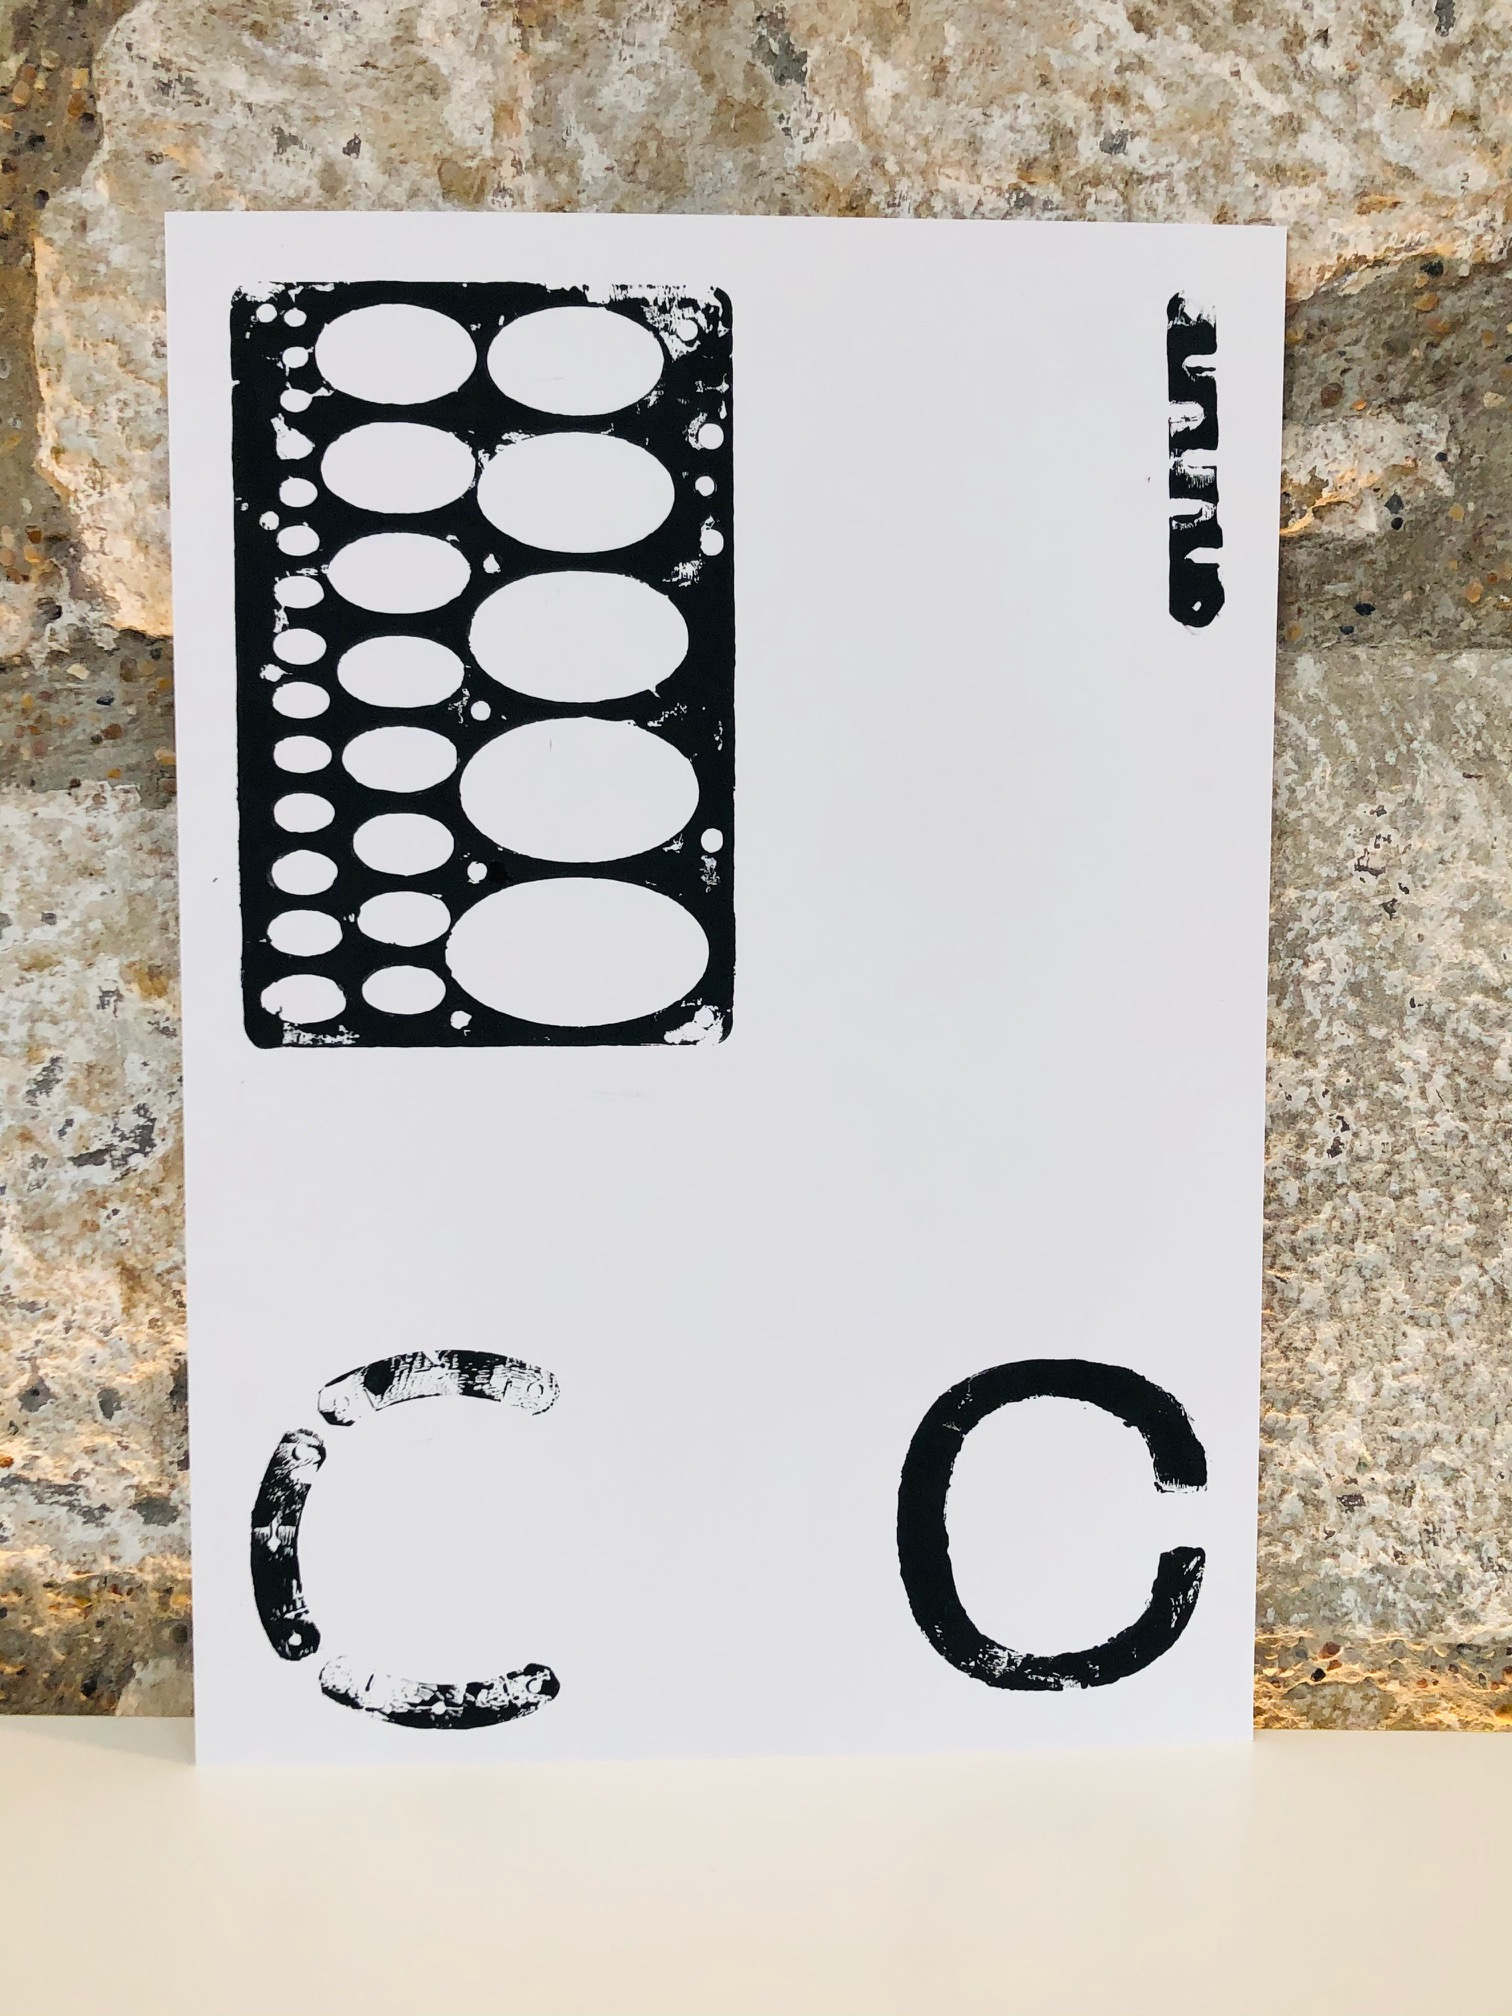 Monoprint 4 by Curtis Rayment